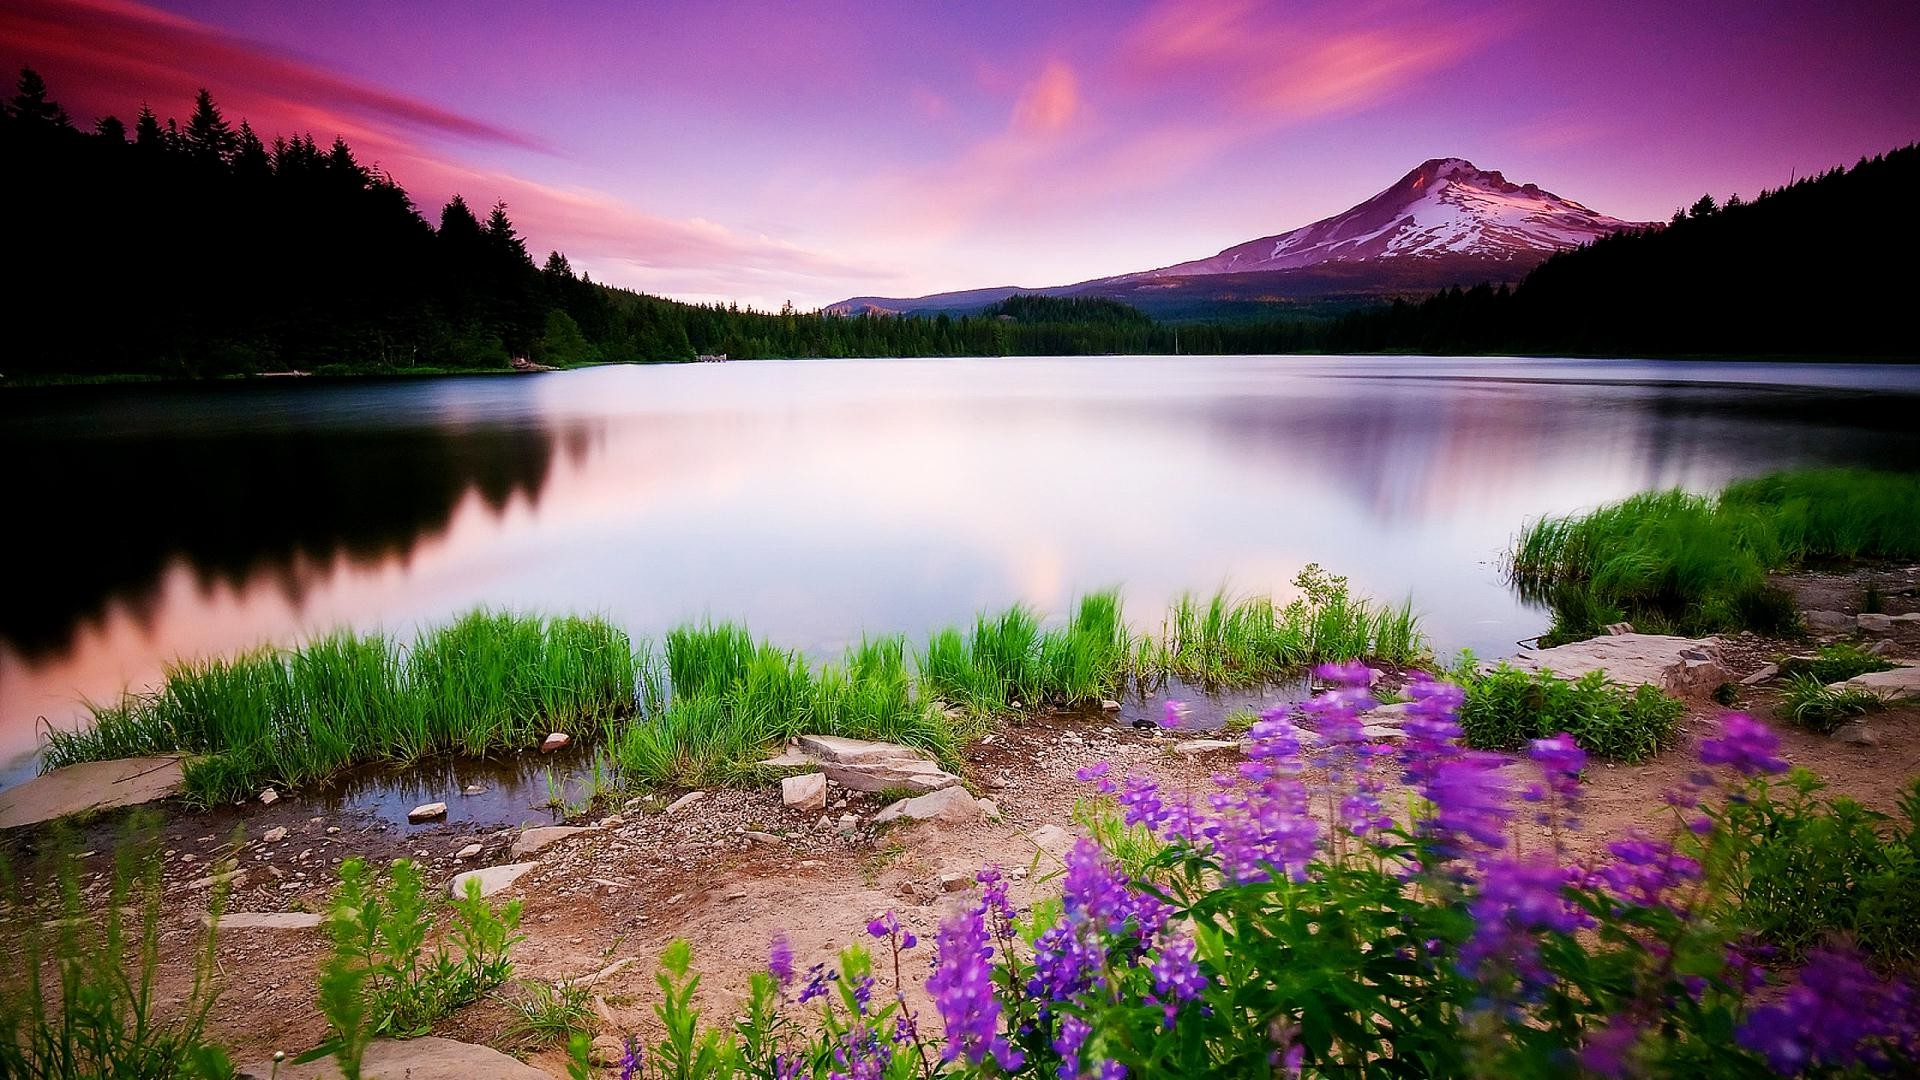 Colorful Nature HD Wallpapers Pictures One HD Wallpaper 1920x1080